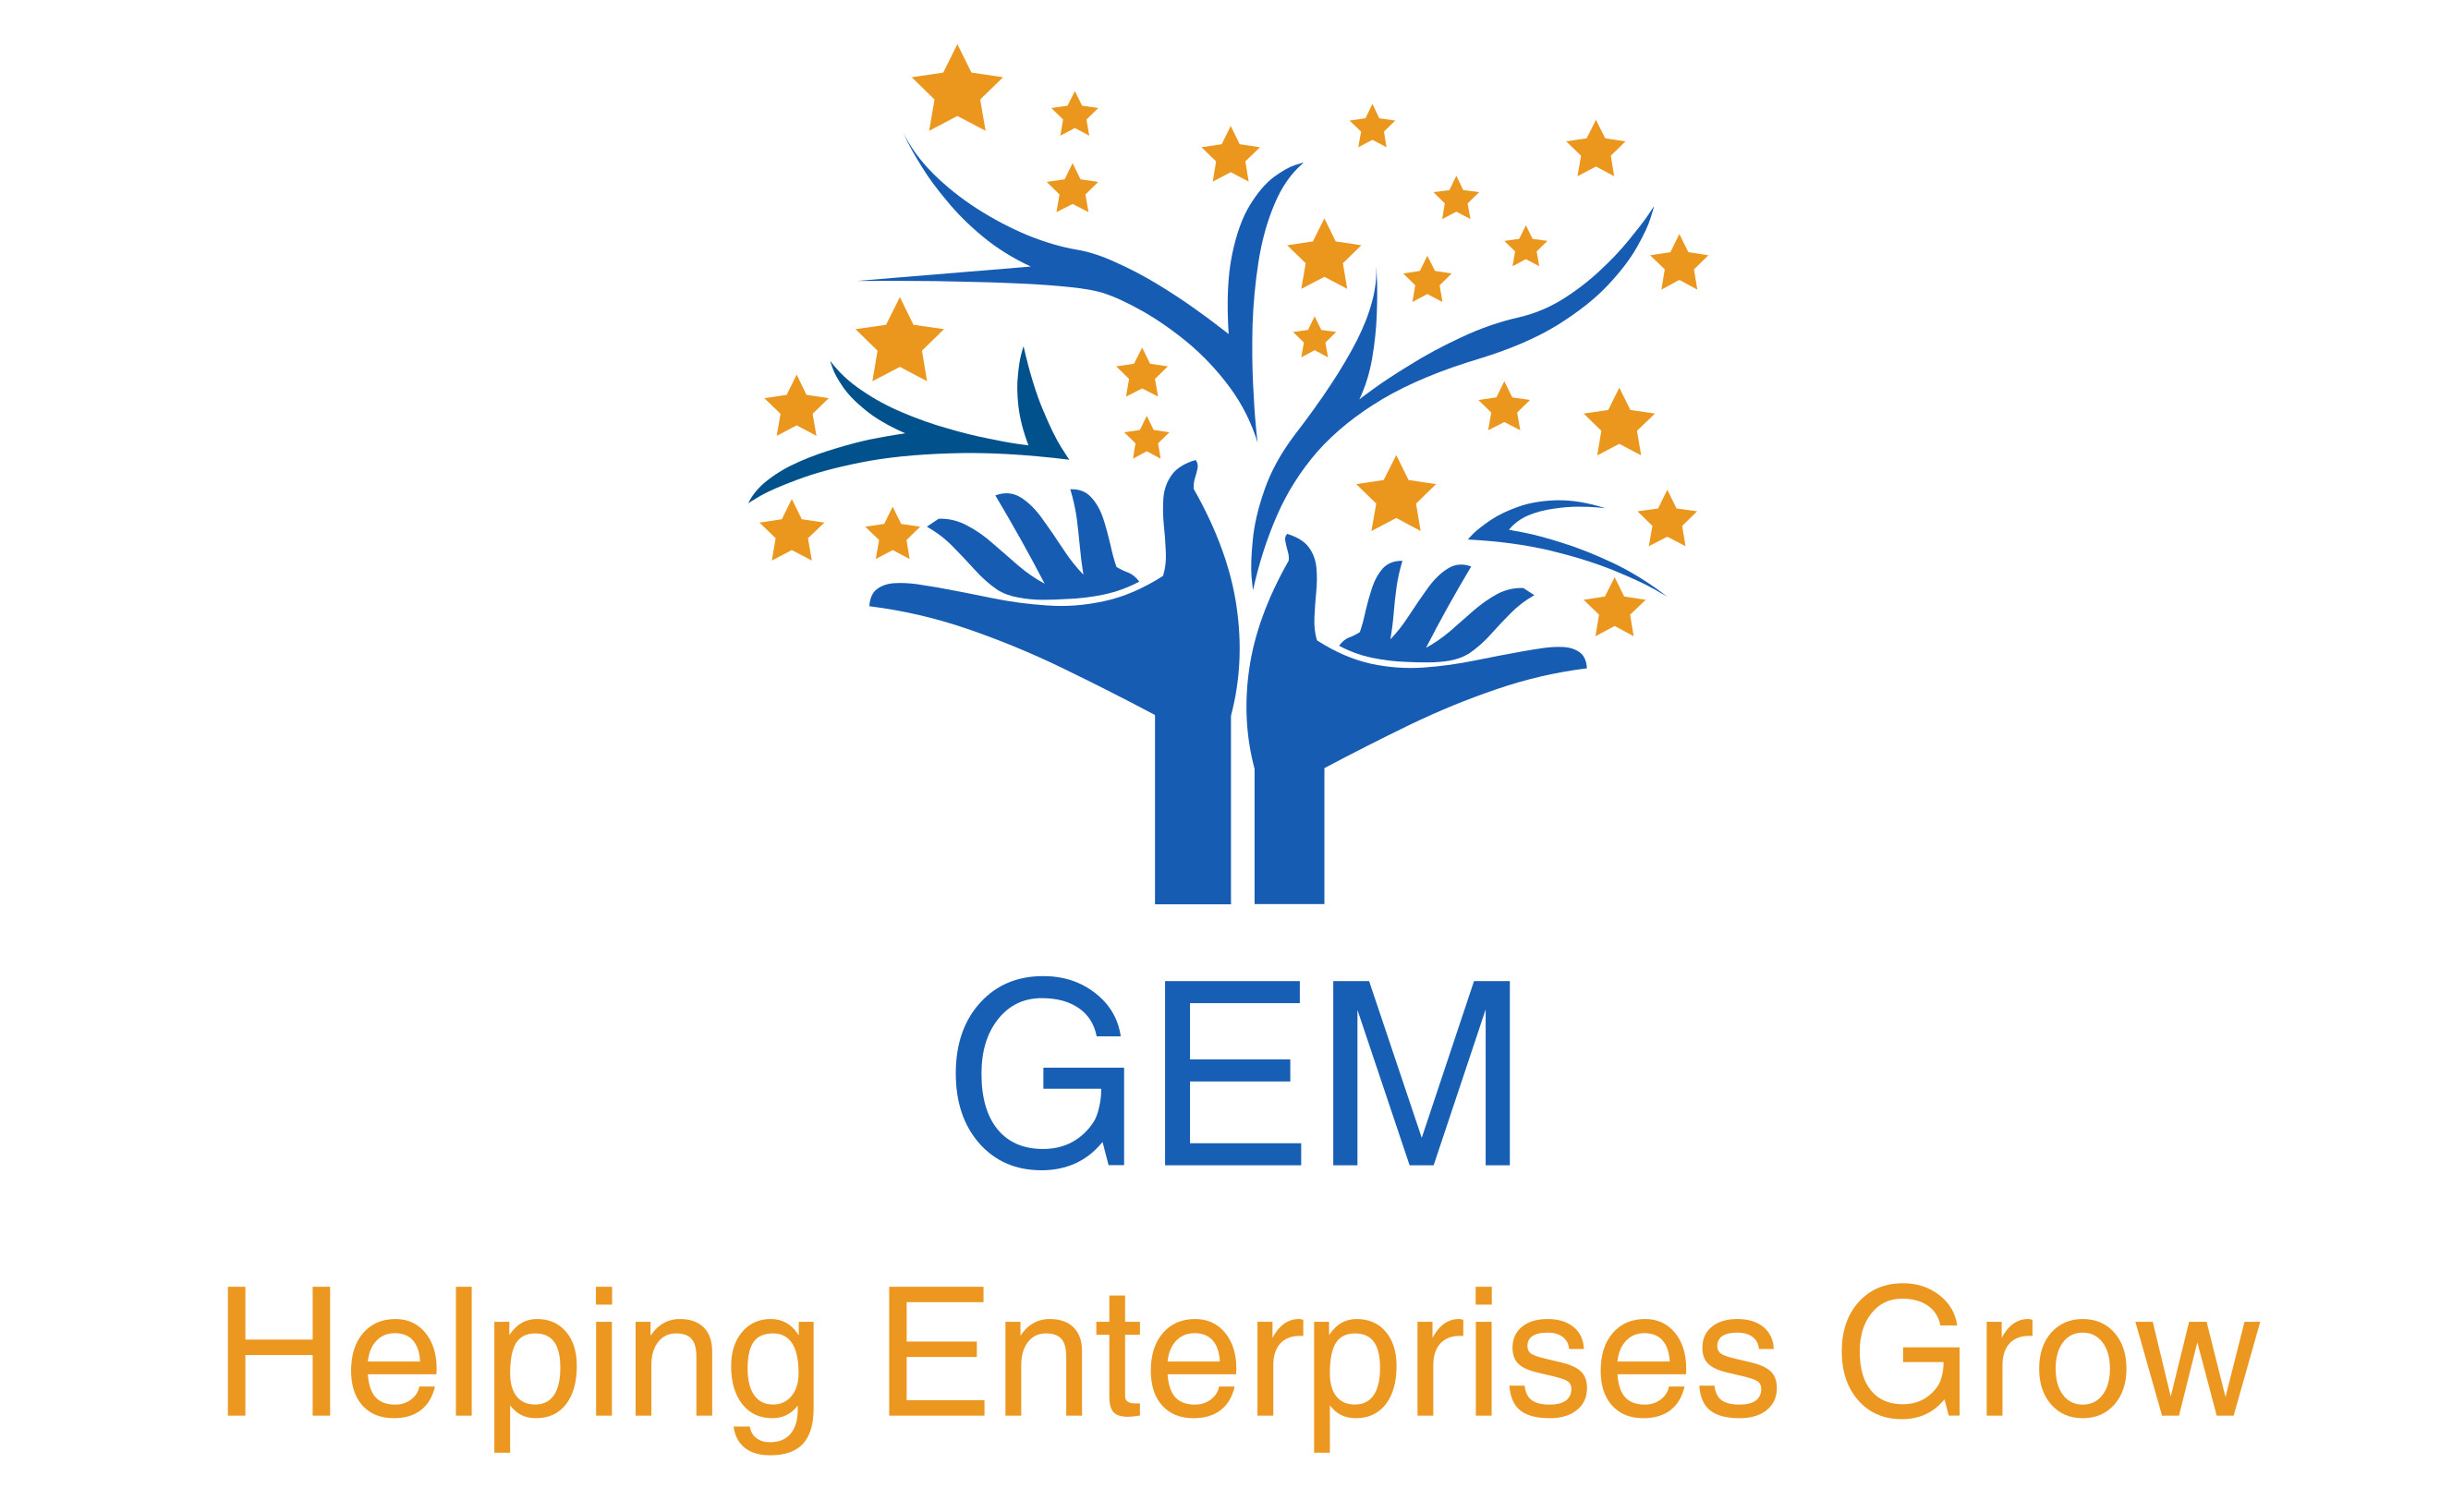 GEM Helping Enterprises Grow